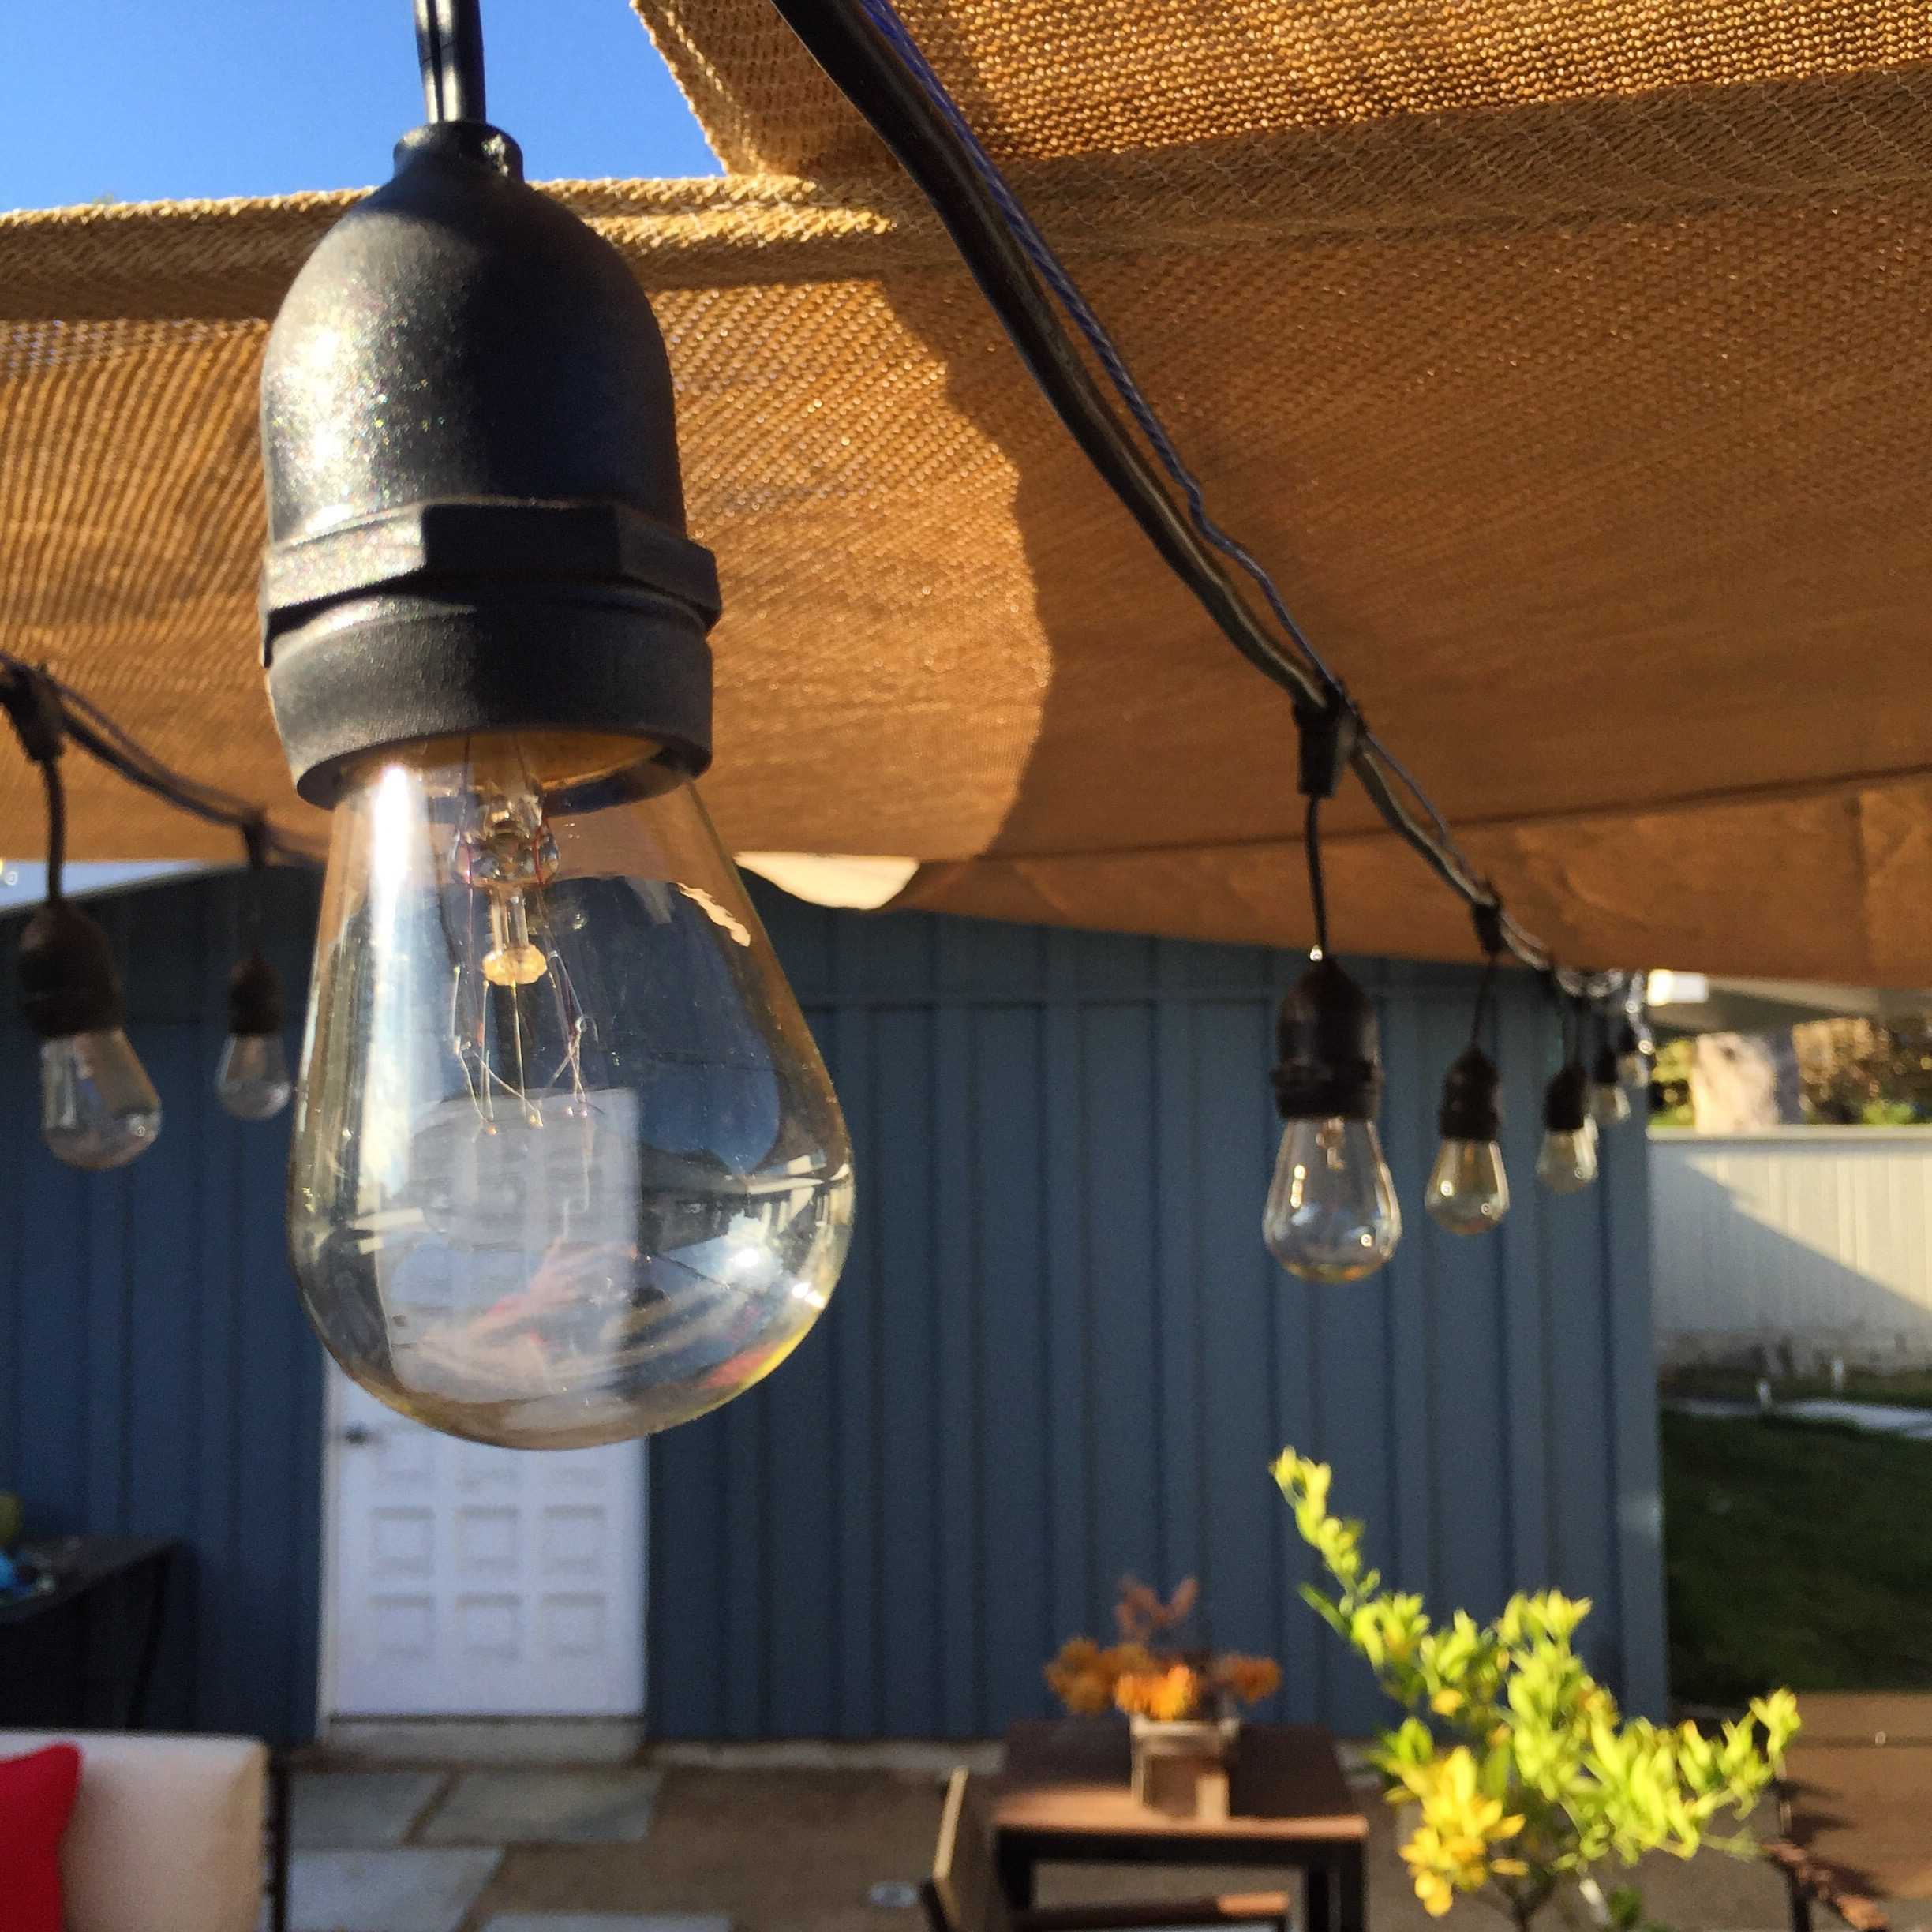 Well Known Costco Porch Light The Best Outdoor Lights String Lighting 14 Solar Regarding Hanging Outdoor String Lights At Costco (View 9 of 20)